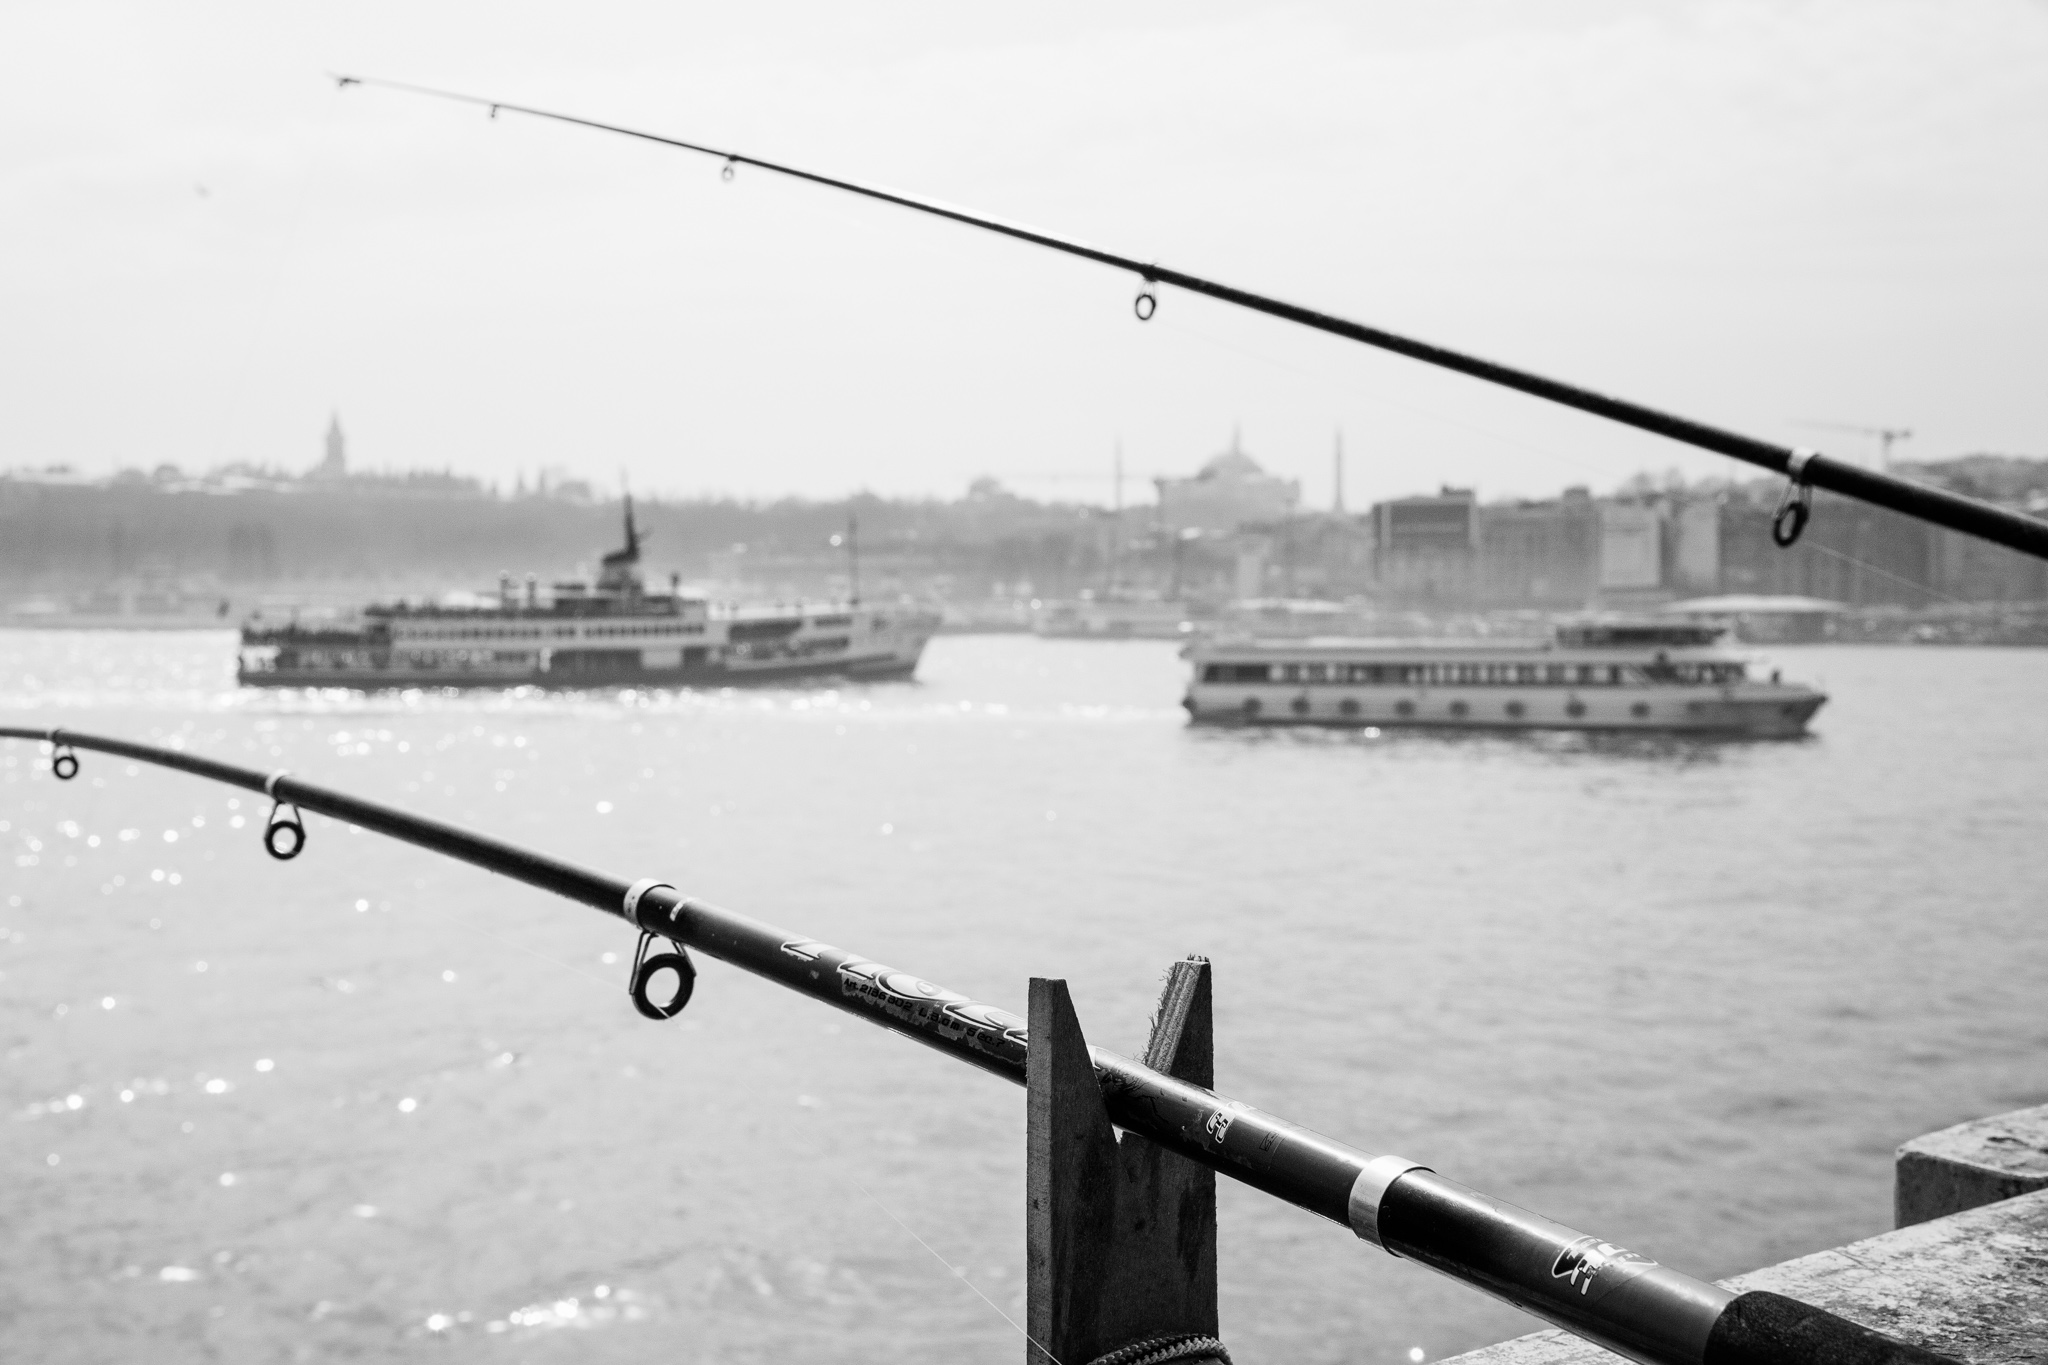 istanbul_galata-bridge-0929-two-ferries-between-fishing-rods.jpg